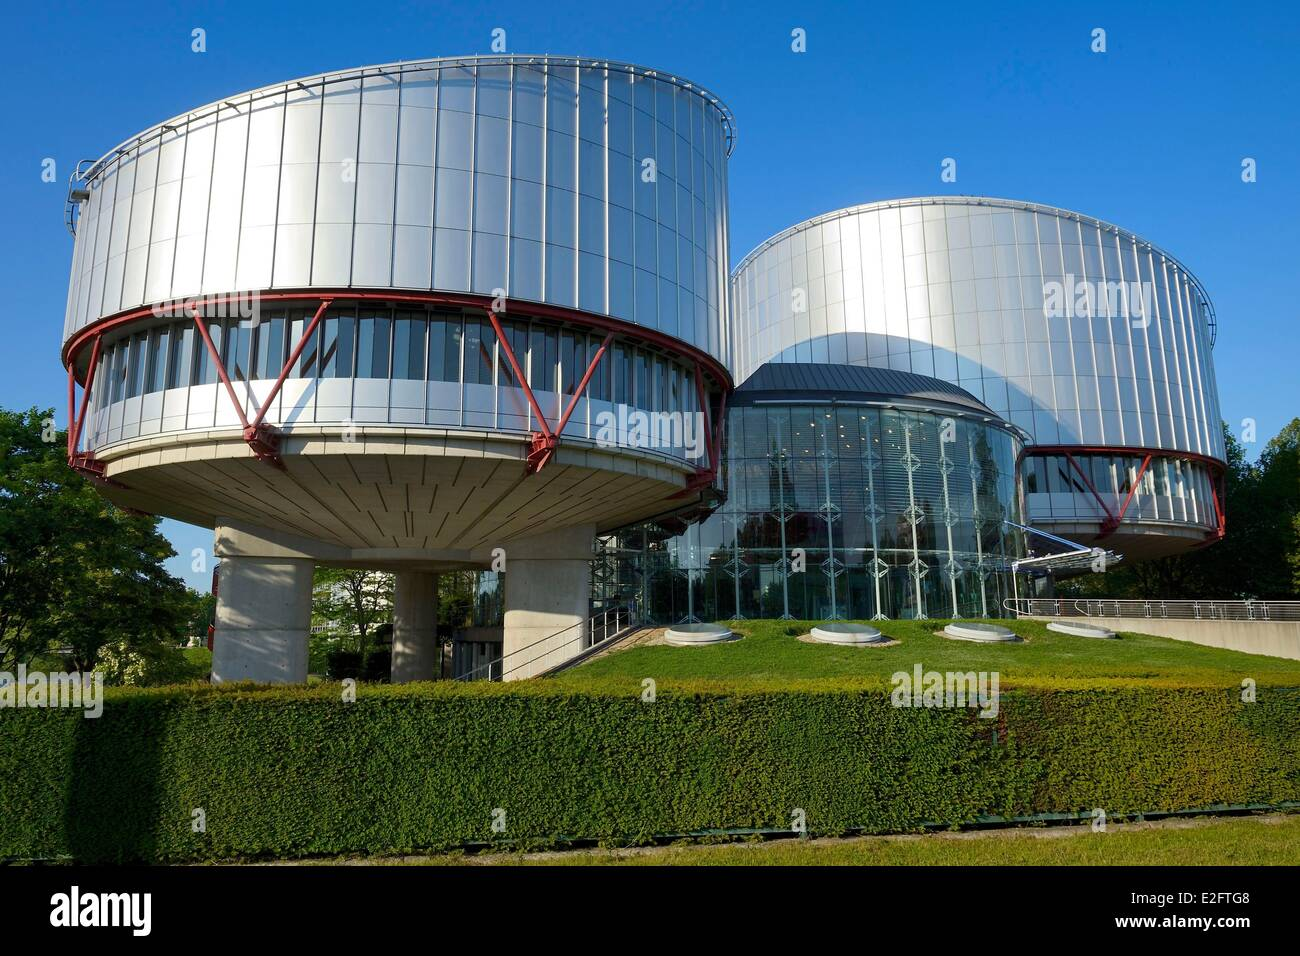 France Bas Rhin Strasbourg Human Rights building by architect Richard Rogers on quay Ernest Bevin - Stock Image